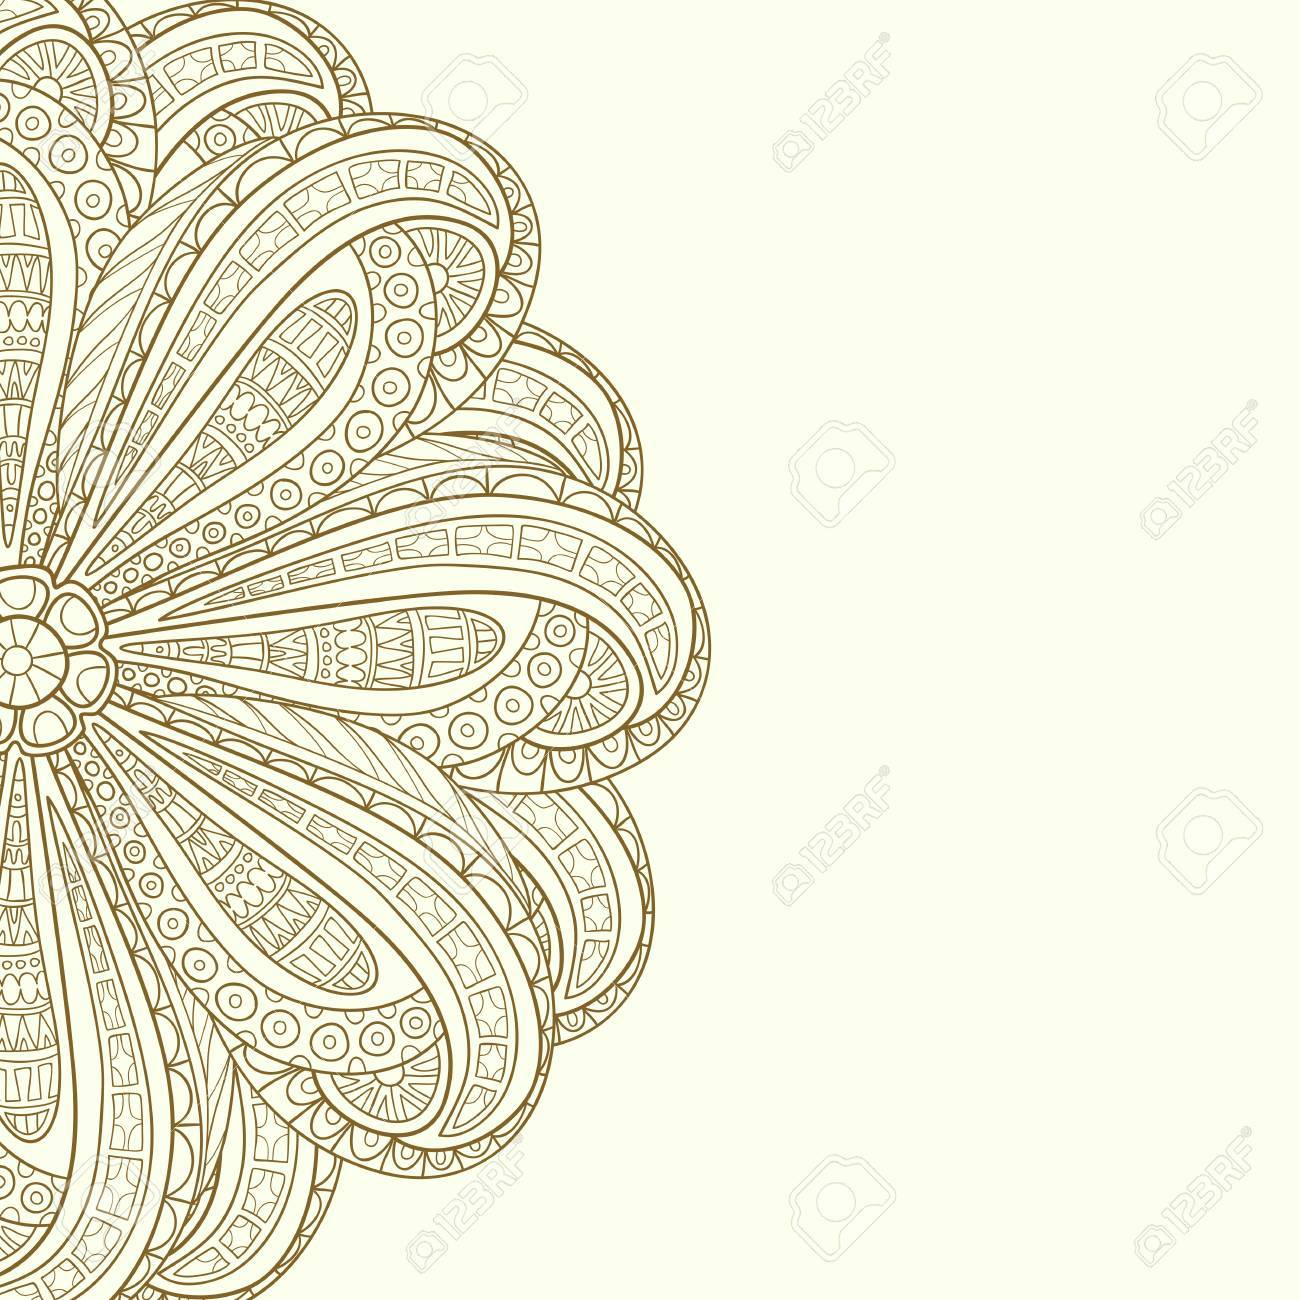 Henna 8x10 FT Photo Backdrops,Flowers and Paisley Doodle Tattoo Pattern Culture Inspiration Monochrome Image Background for Baby Shower Birthday Wedding Bridal Shower Party Decoration Photo Studio